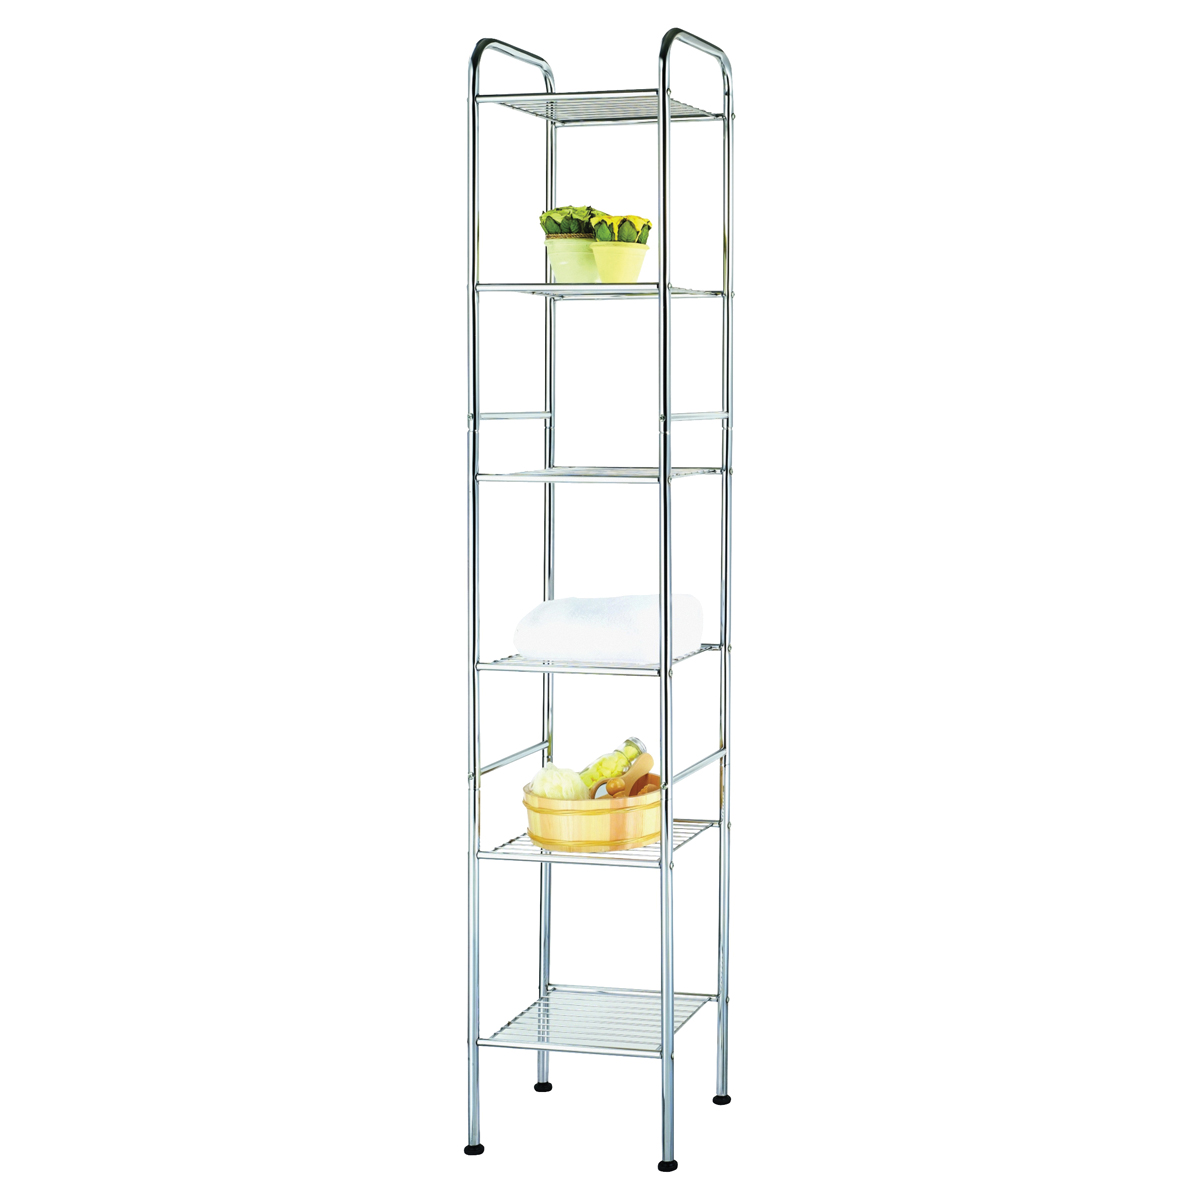 Picture of Simple Spaces BC45C-CH Bath Shelf, Each shelf 11 lb Max Weight Capacity, 6-Shelf, Steel, Polished Chrome